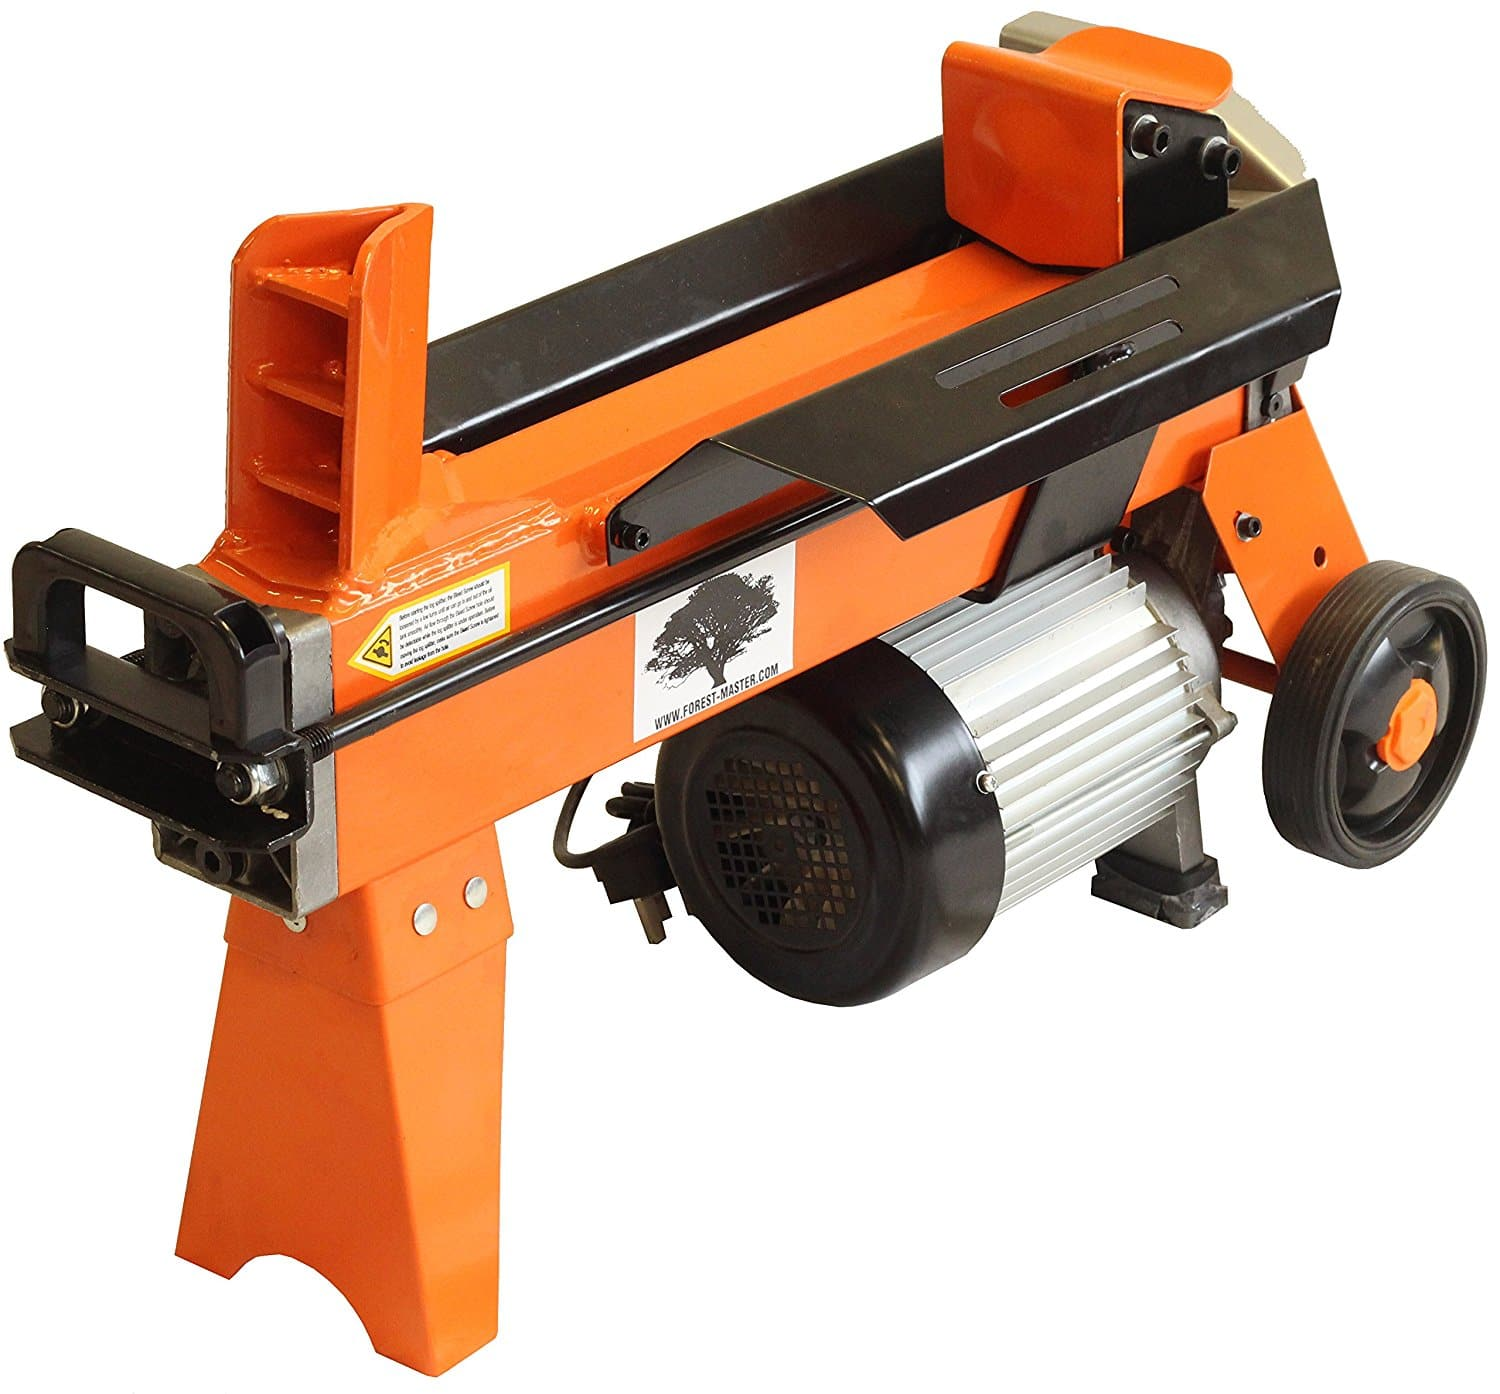 How to Choose a Fabulous log splitter on a tight budget